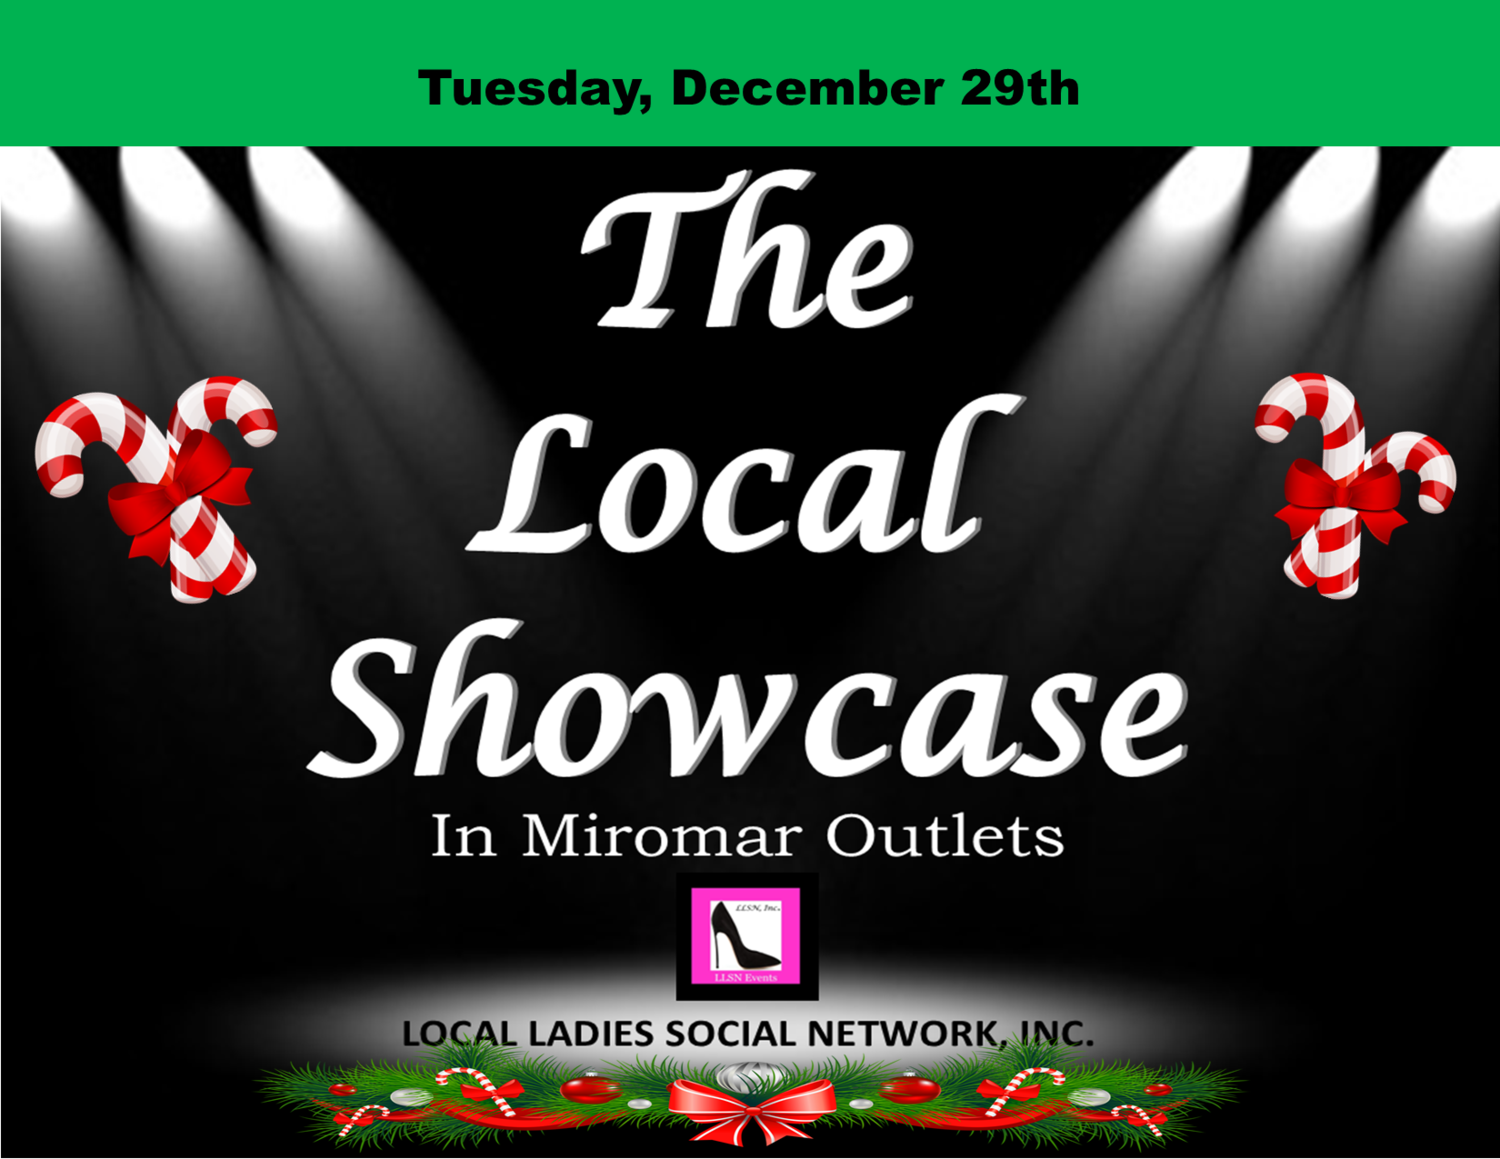 Tuesday, December 29th 11am-7pm.